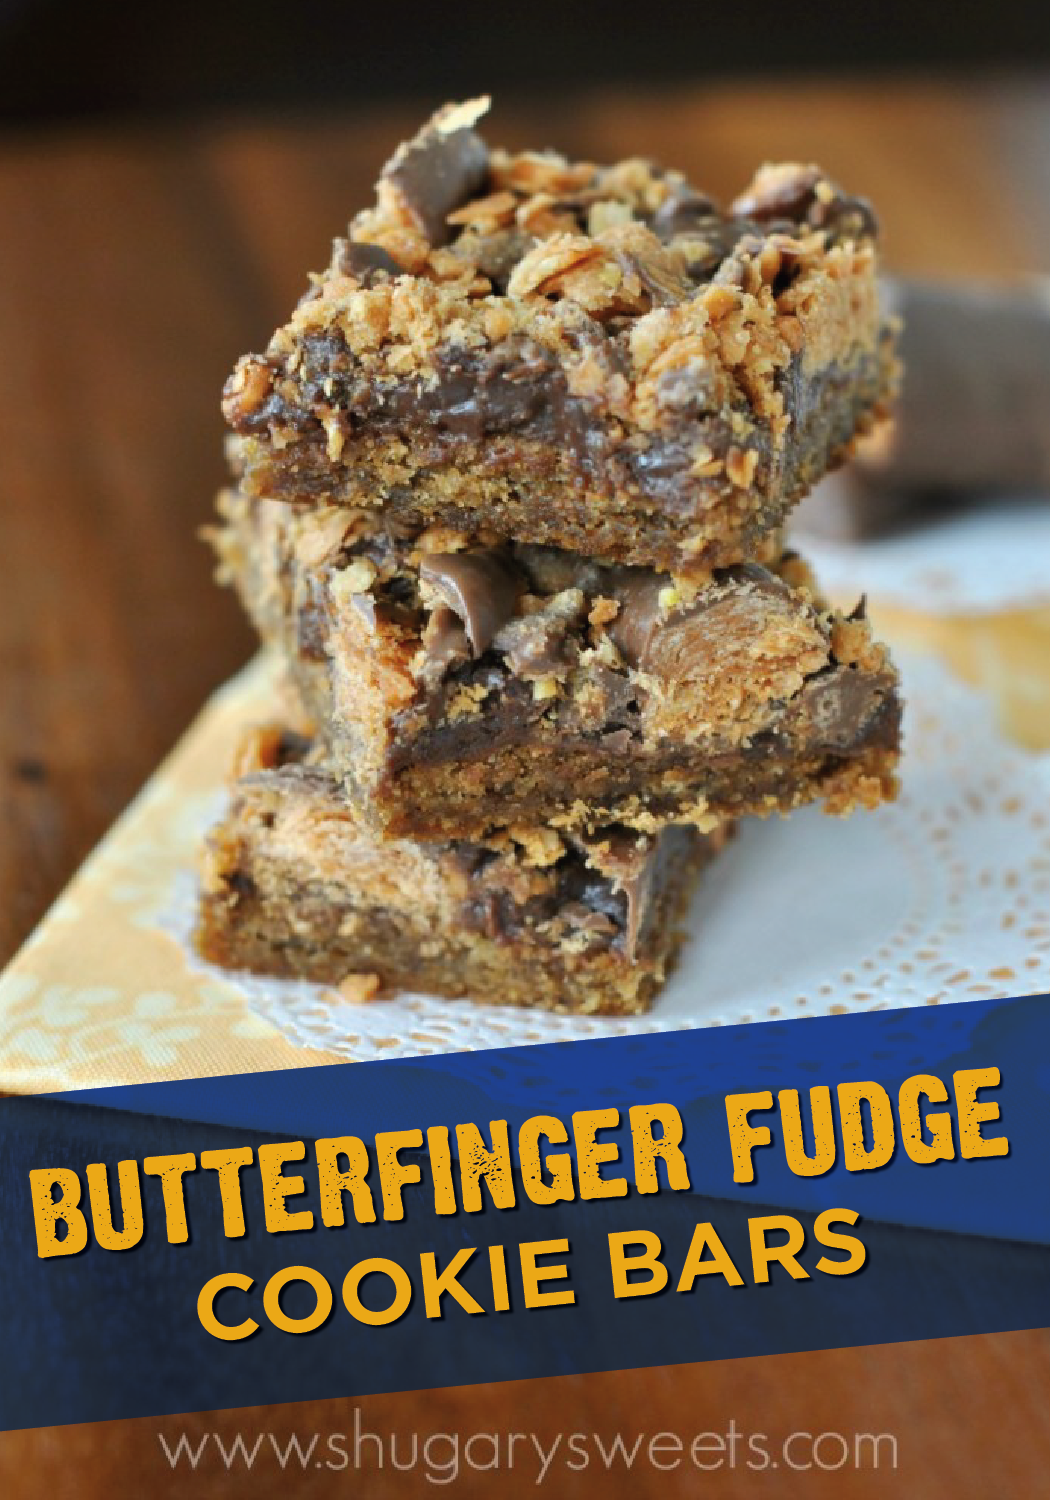 Butterfinger Fudge Cookie Bars are chewy and delicious with a crispety, crunchety, peanut-buttery taste. The peanut butter cookie crust is topped with a layer of fudge and crushed up pieces of BUTTERFINGER® Bites. This dessert is the perfect sweet treat to share with your coworkers at the office.